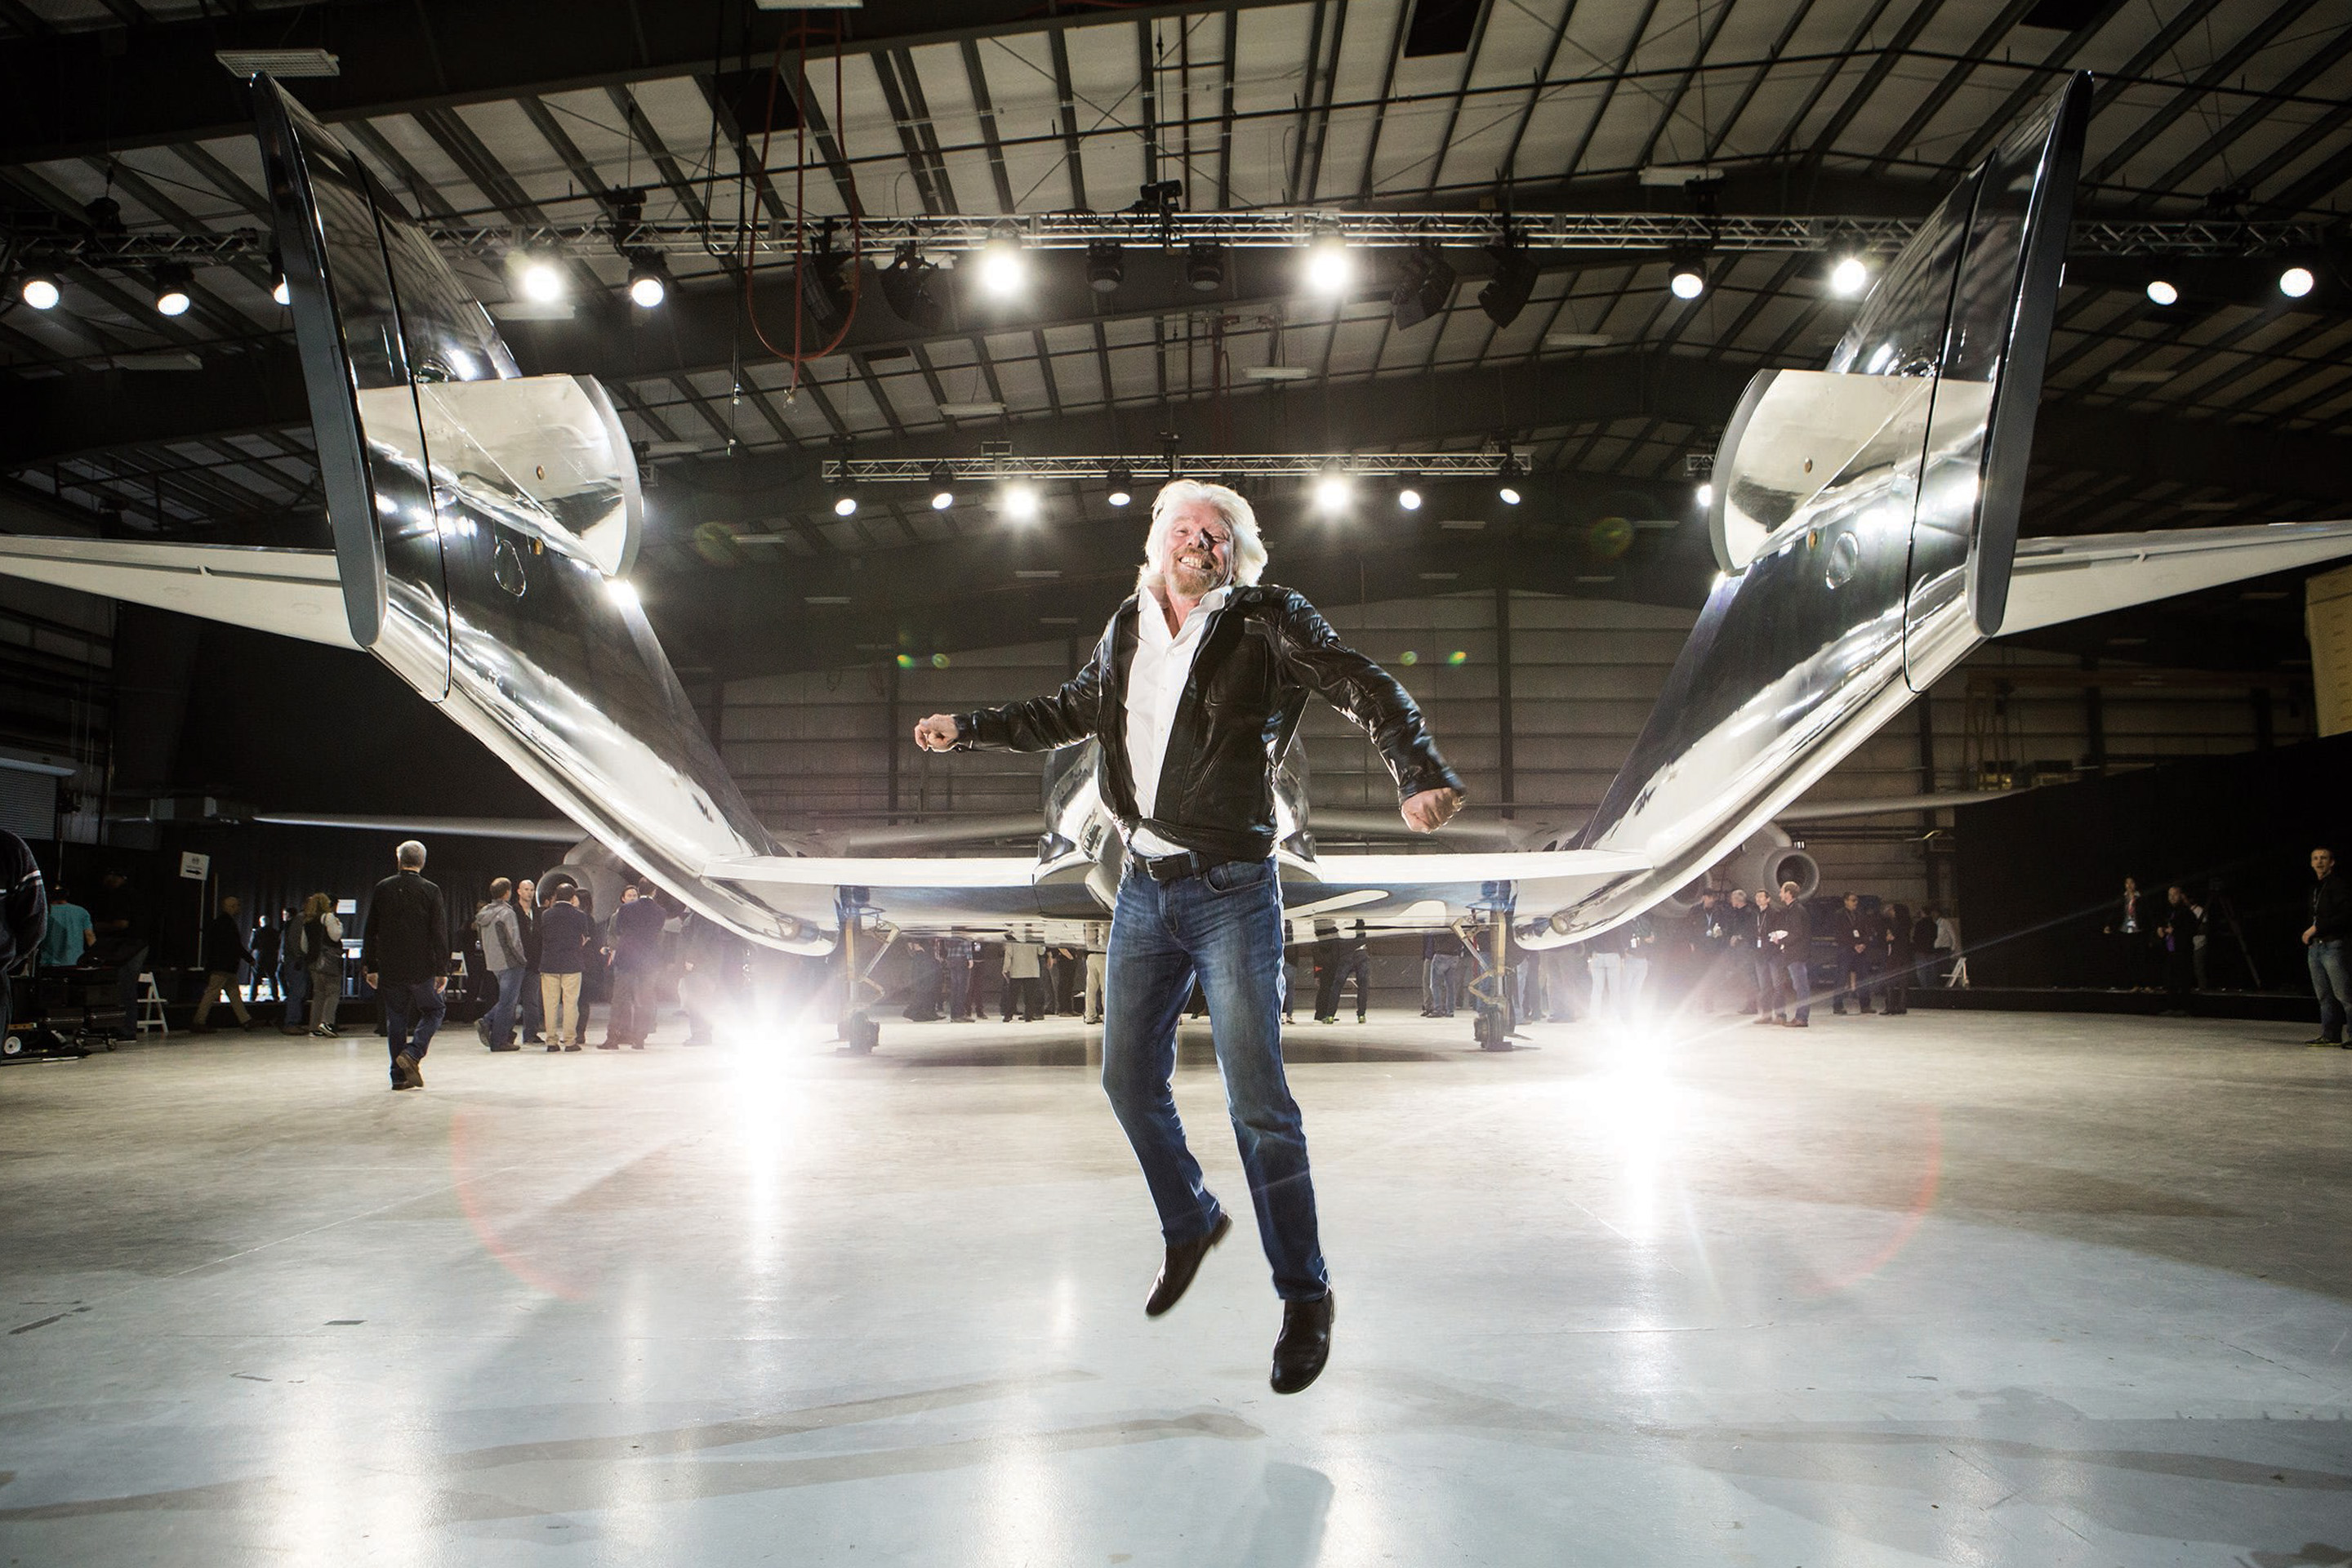 Richard Branson celebrates after unveiling Virgin Galactic's  Spaceship Unity in February  2016.